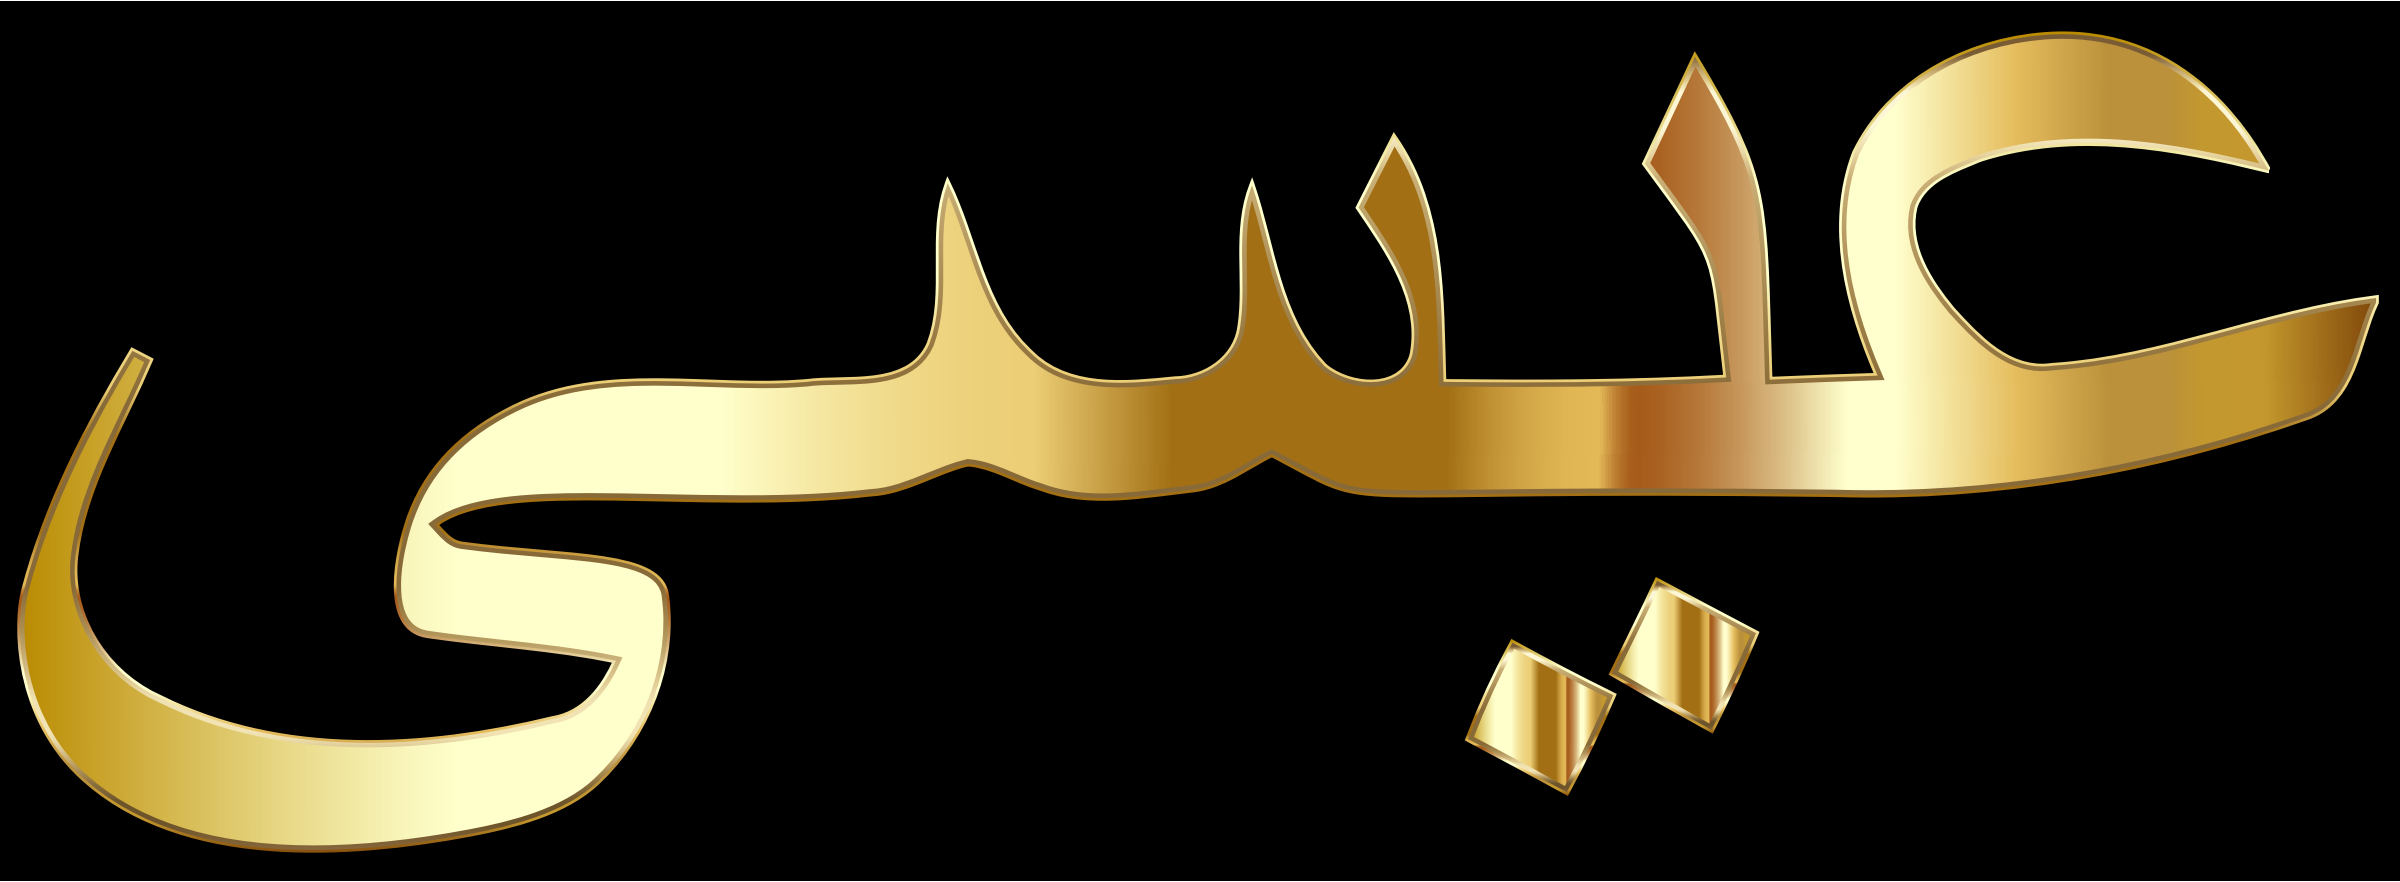 Jesus In Arabic Calligraphy Gold by GDJ